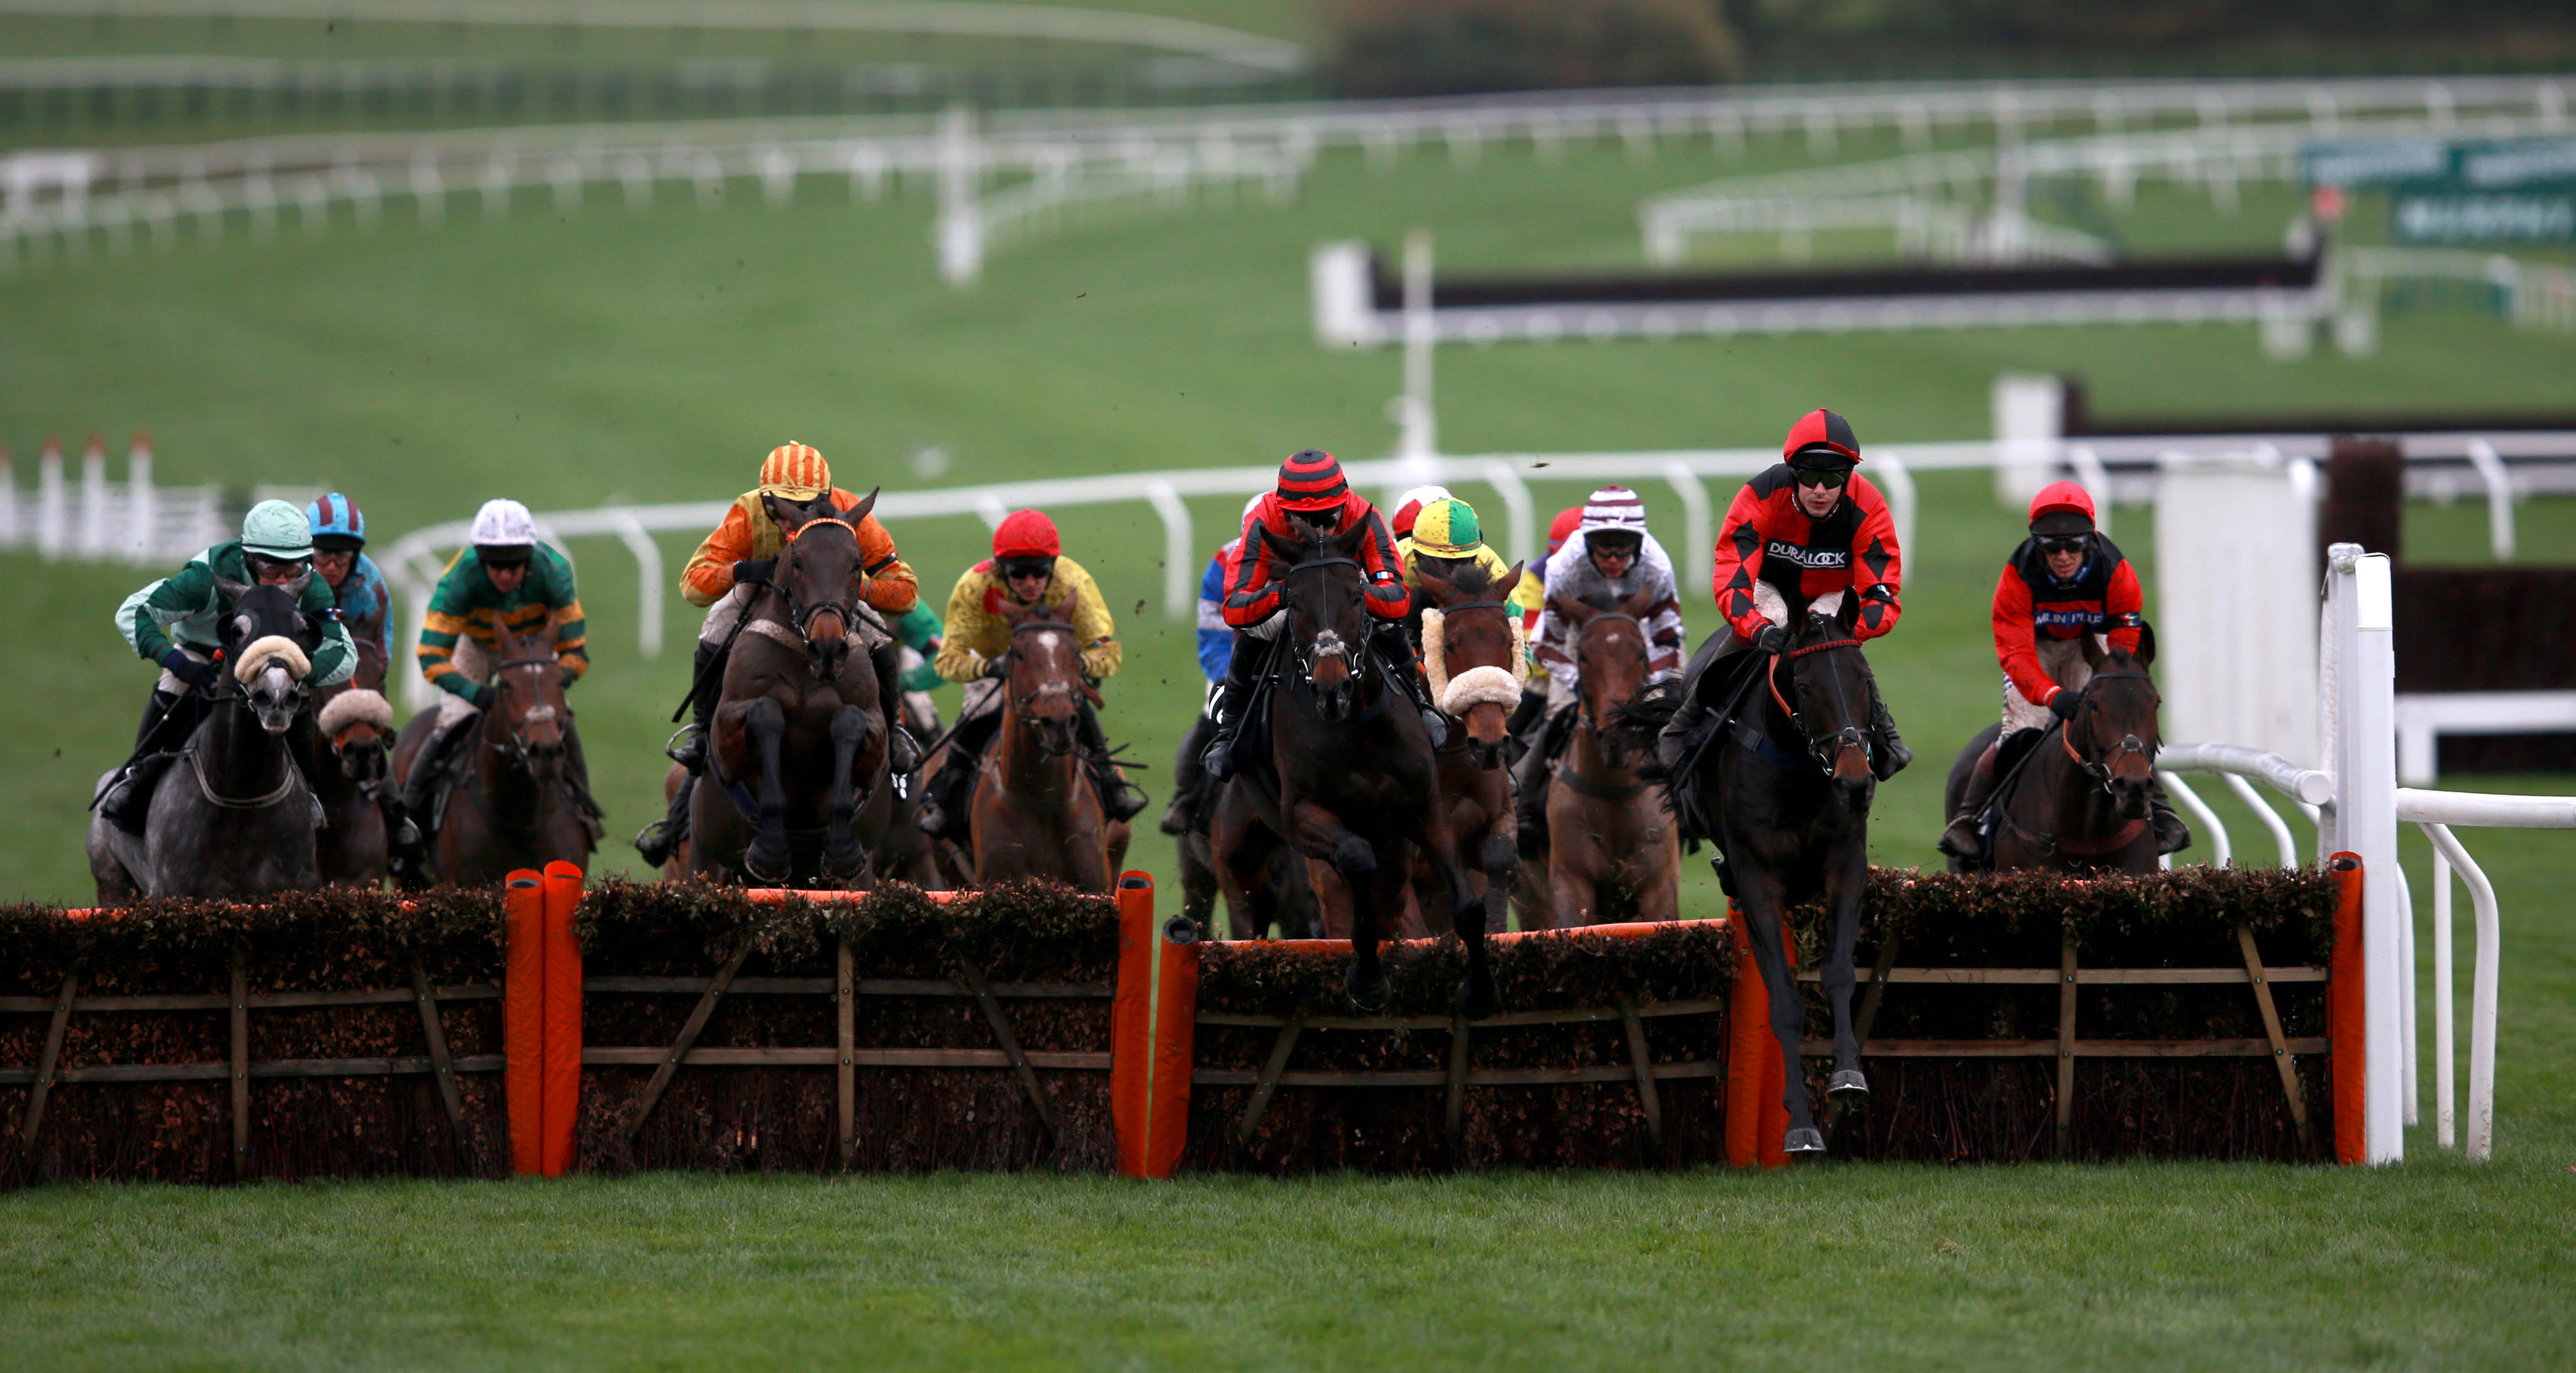 Sir Mangan (right) ridden by Harry Skelton jumps the fence during the Regulatory Finance Solutions Handicap Hurdle © David Davies/PA Wire/Cheltenham Racecourse